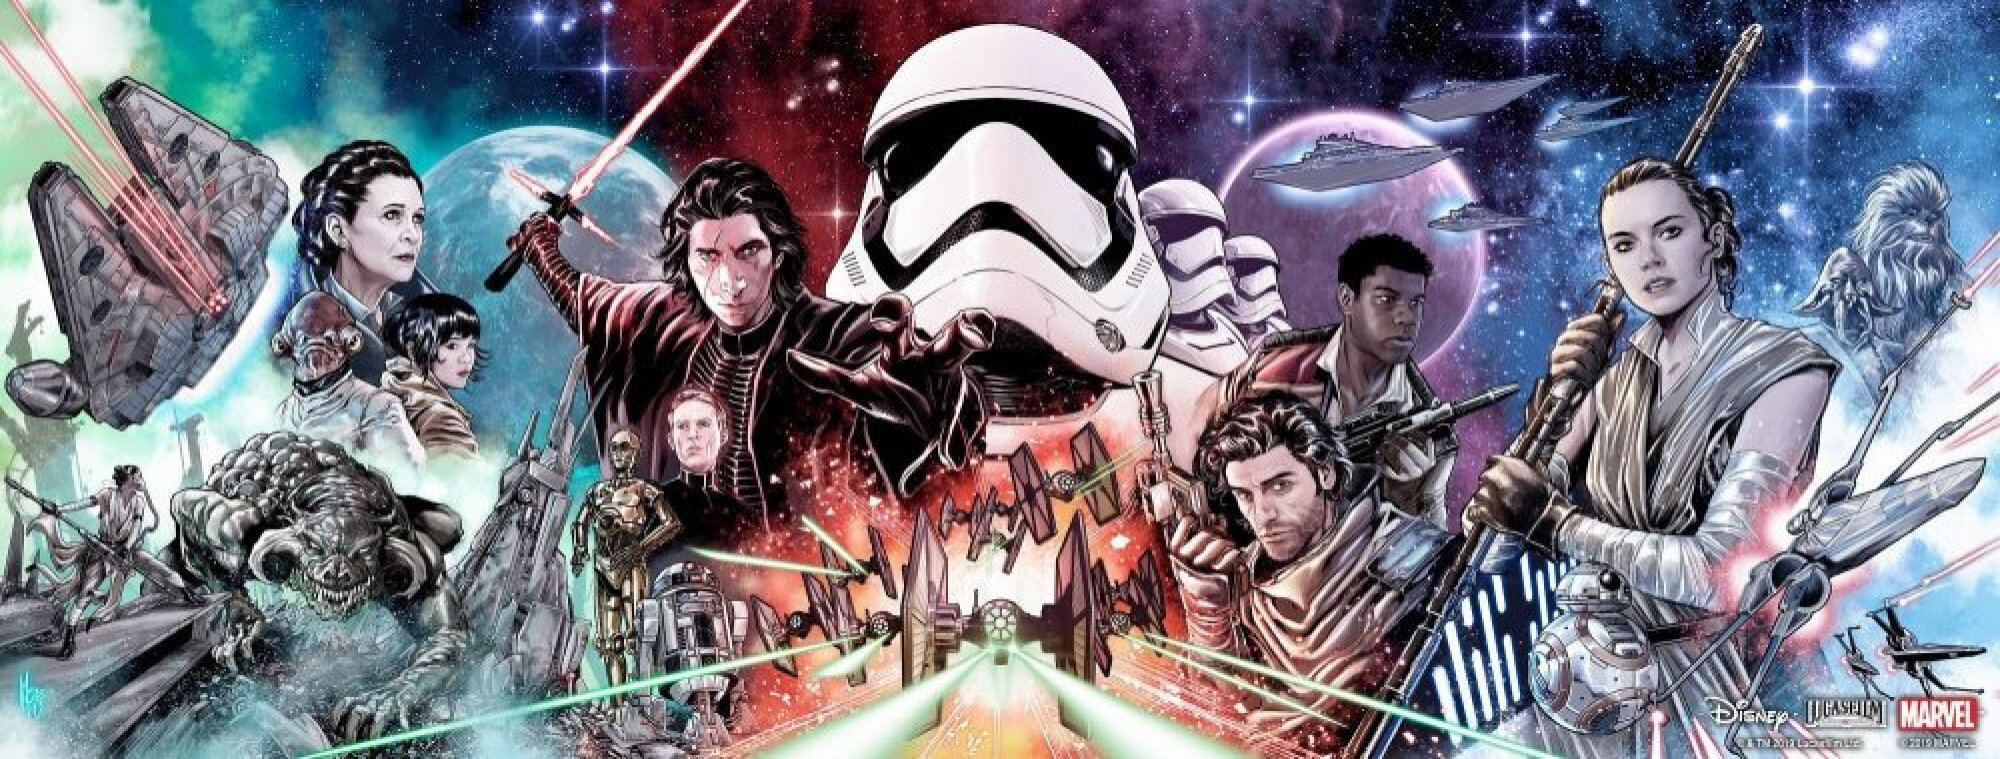 Star Wars: The Rise of Skywalker - Allegiance #1/4, variant cover di Marco Checchetto